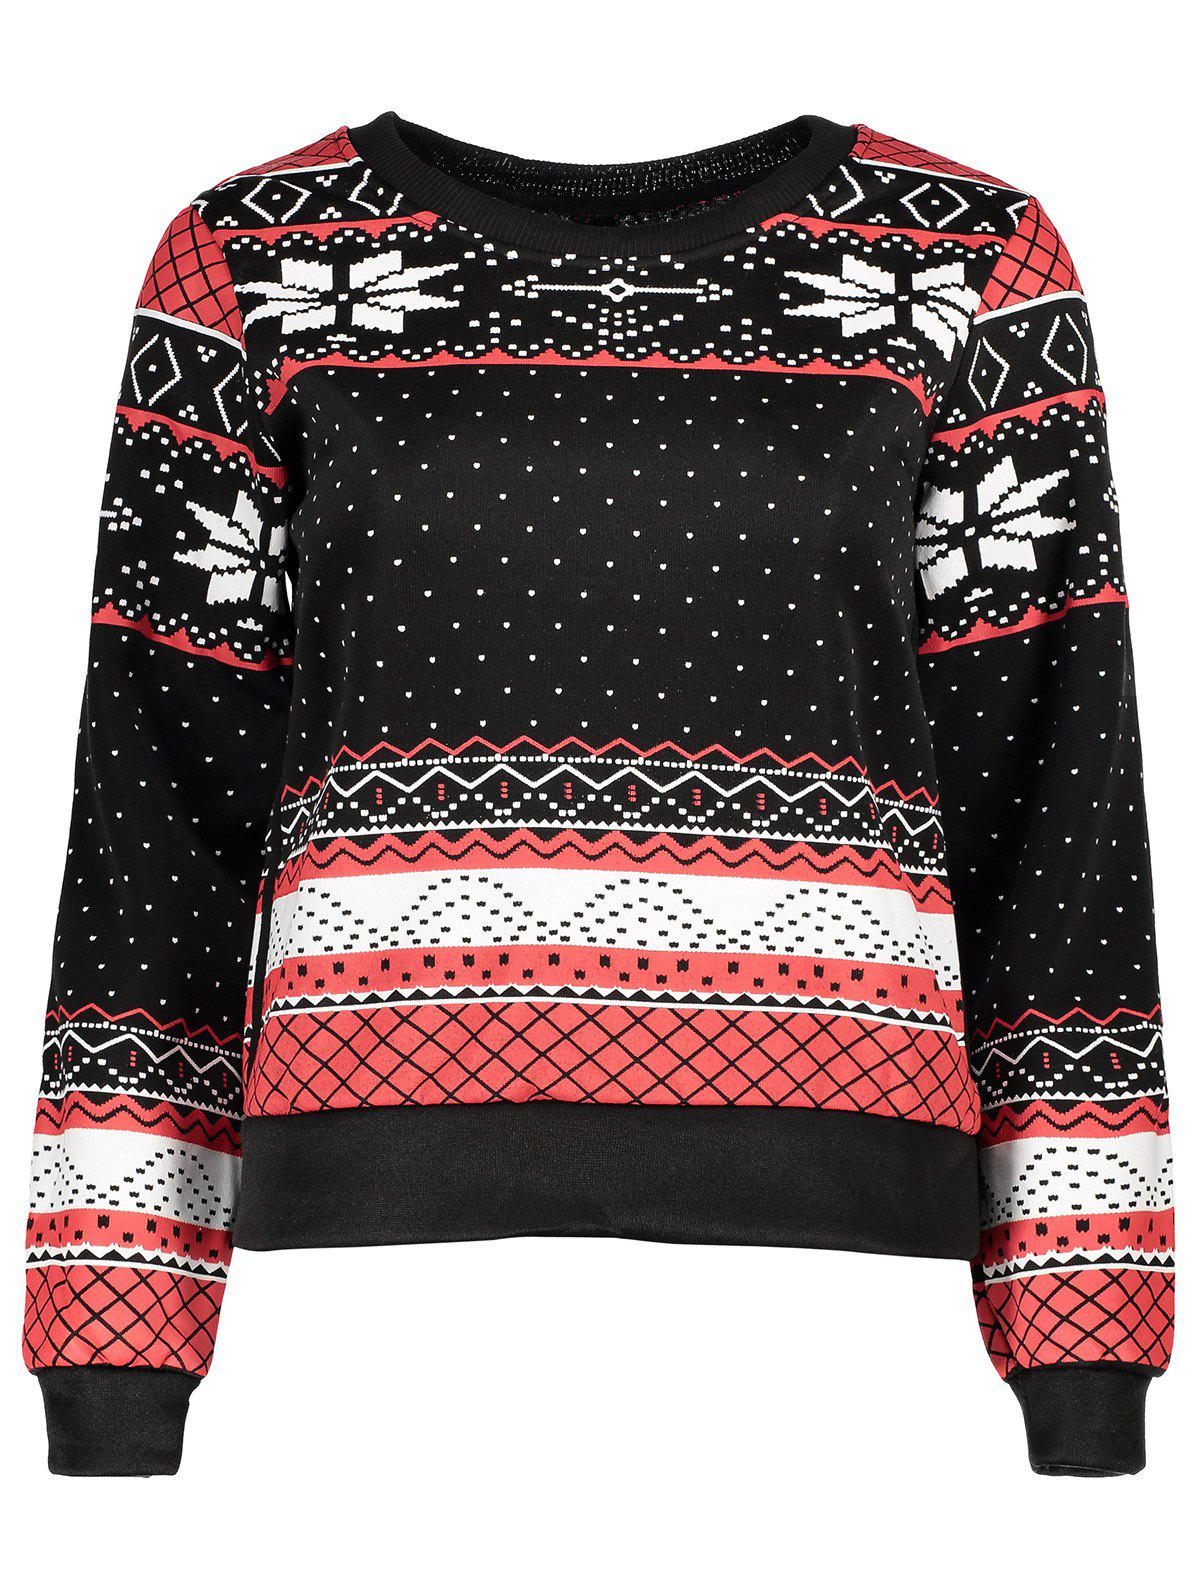 Shops Stylish Round Collar Ethnic Snowflakes Print Thicken Long Sleeve Sweatshirt For Women